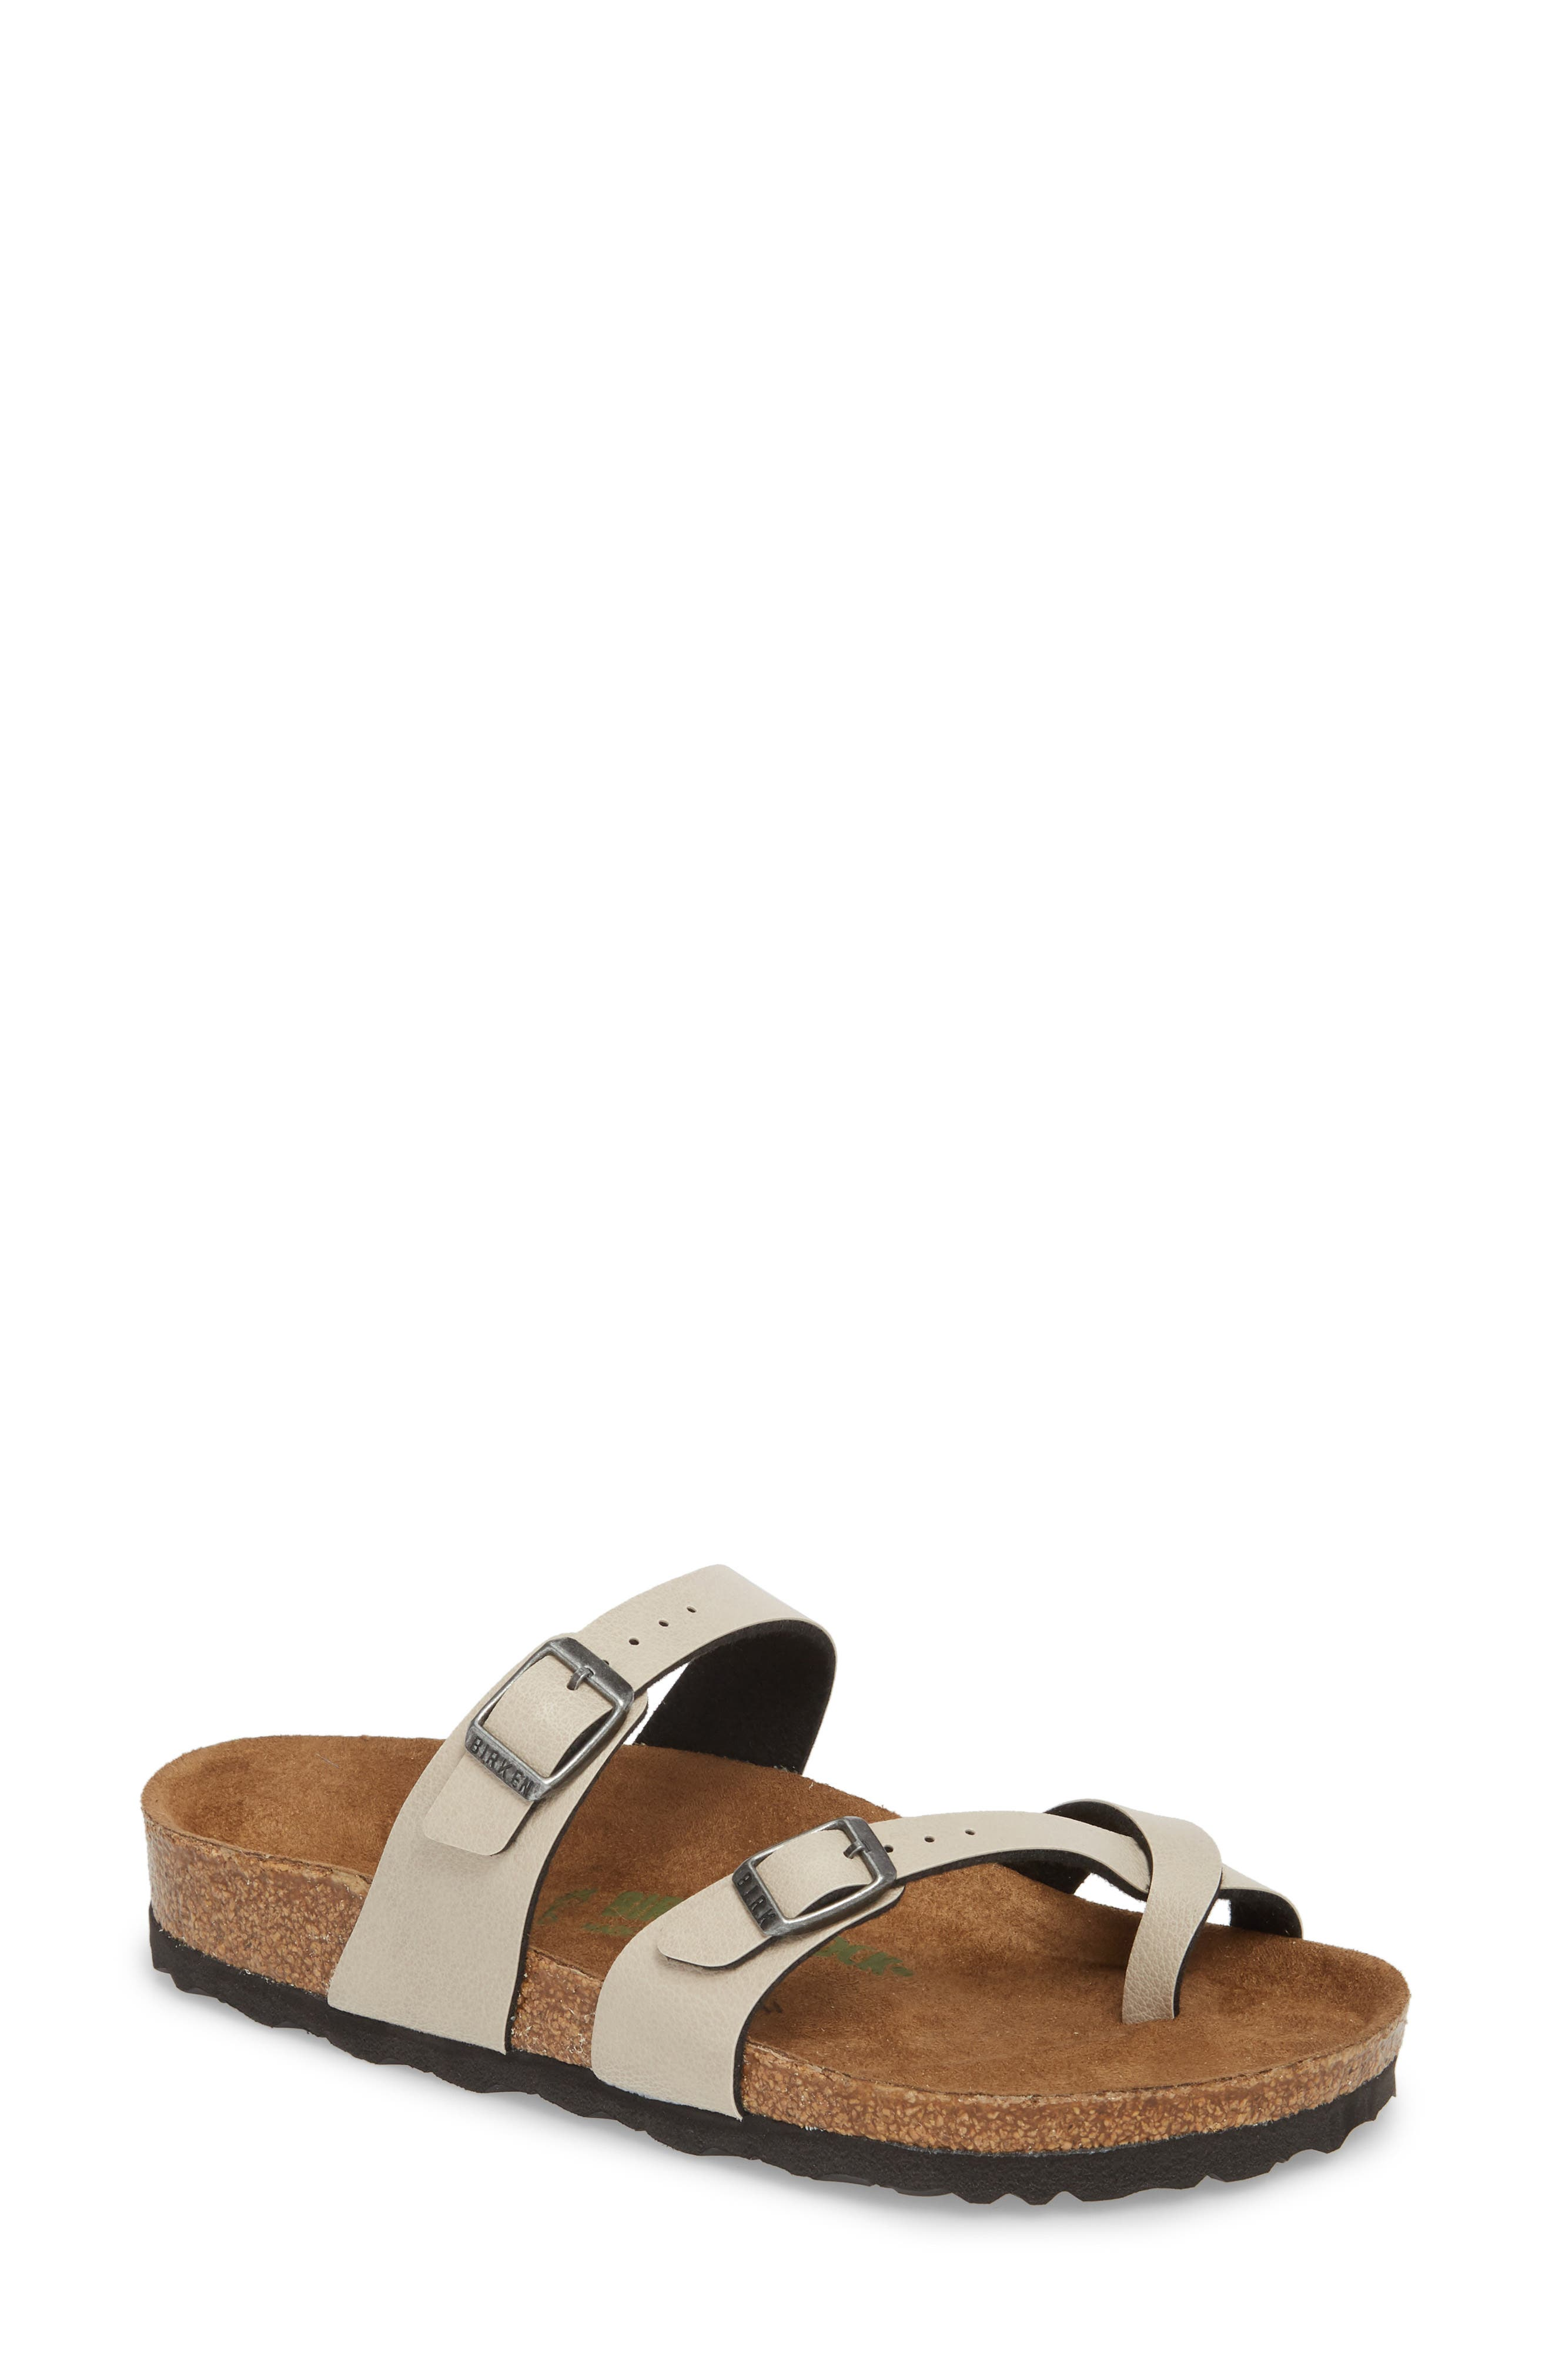 Mayari Birko-Flor<sup>™</sup> Slide Sandal,                             Main thumbnail 1, color,                             Pull Up Stone Faux Leather